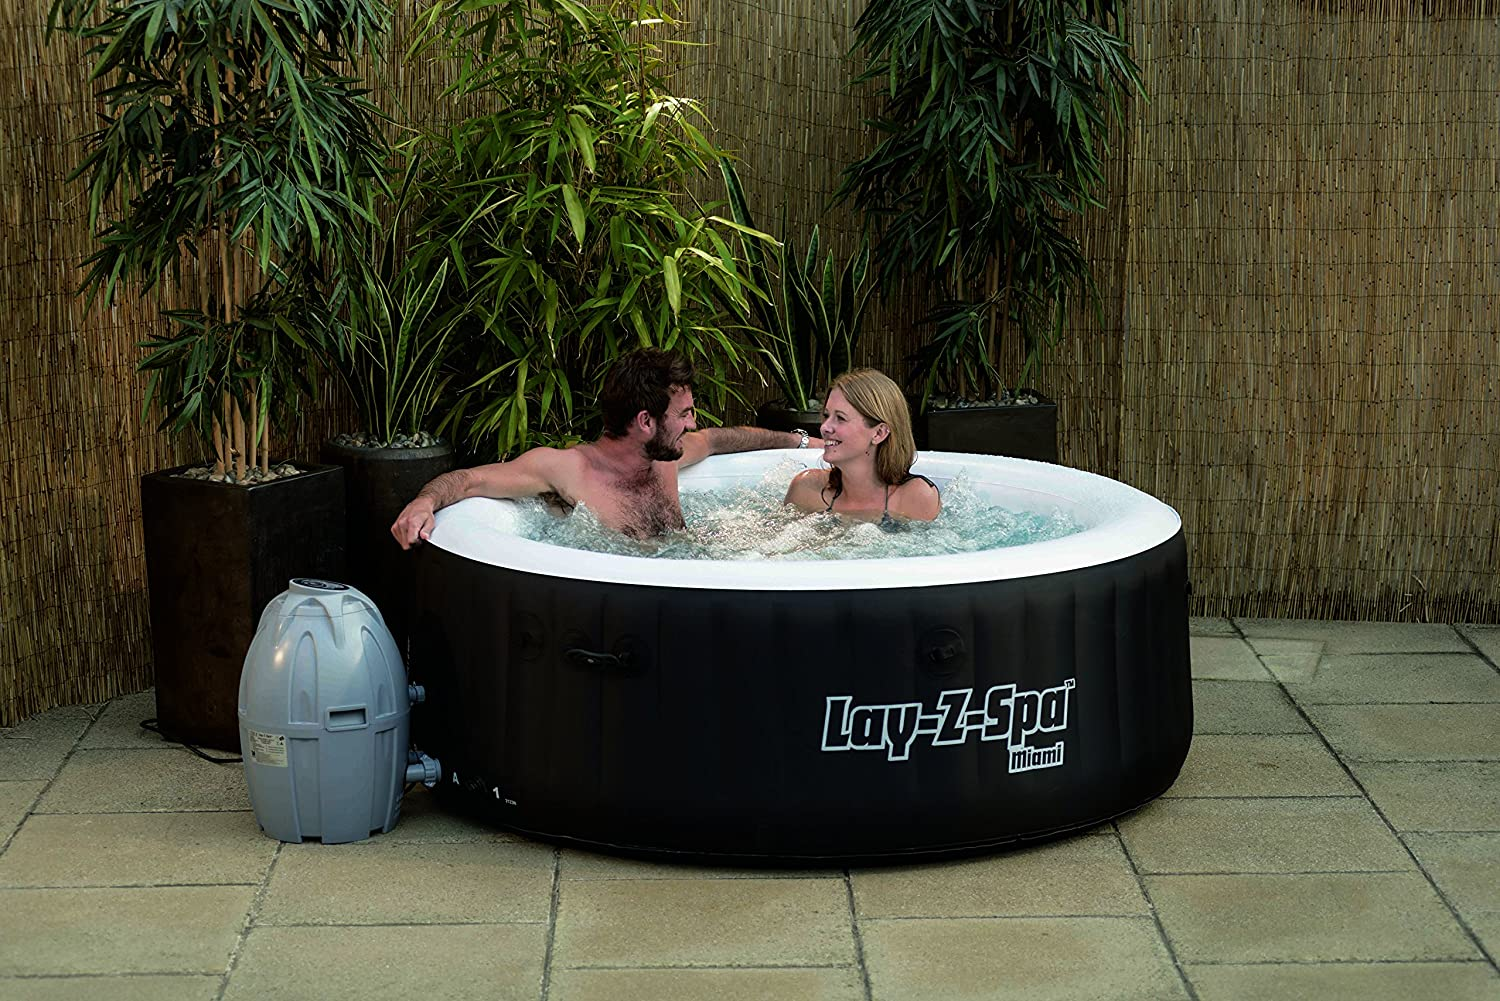 Priced at under £350, the Miami is the cheapest Lay-Z-Spa hot tub.